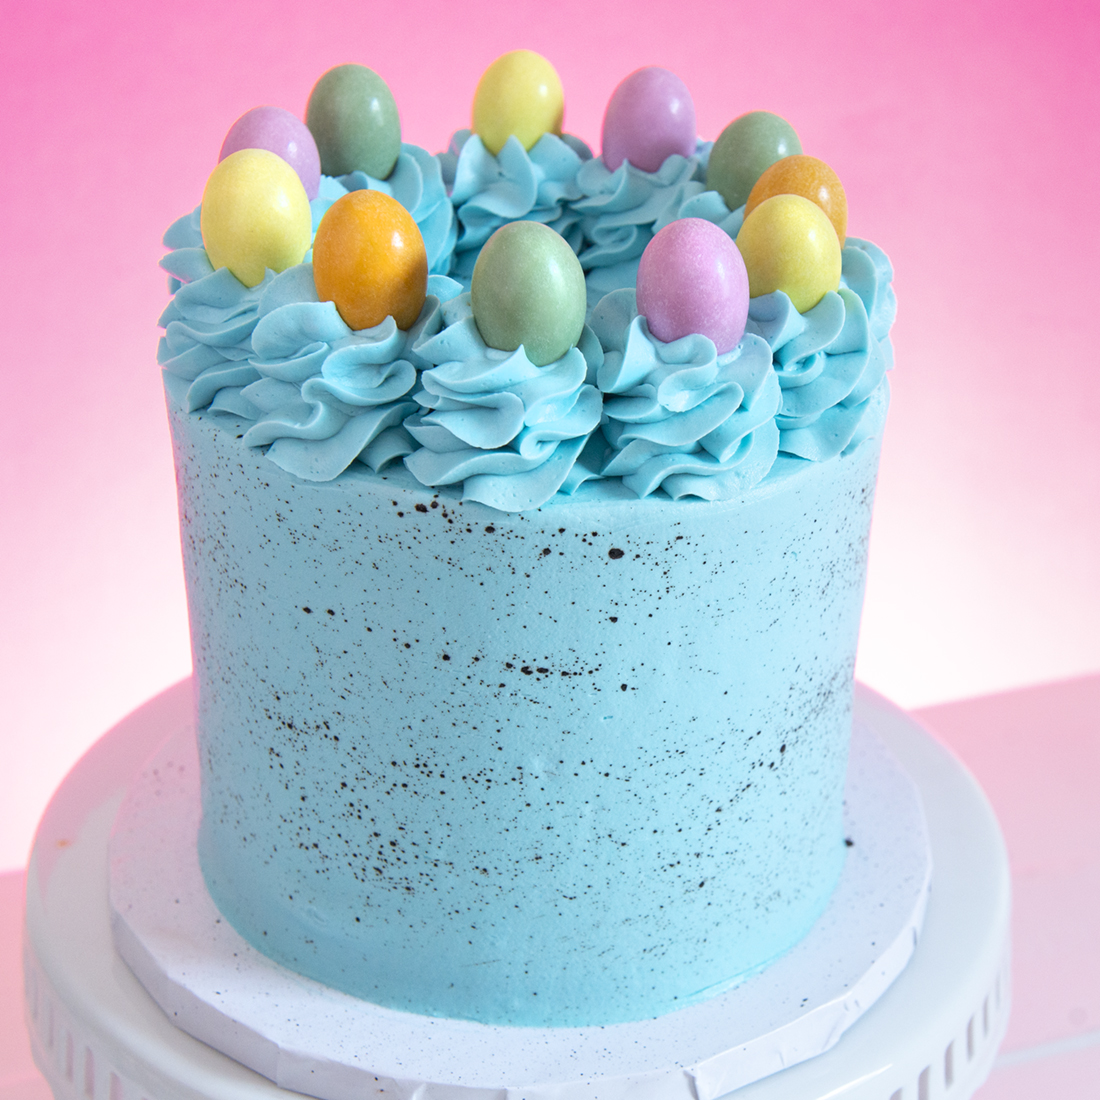 Speckled Egg Cake -